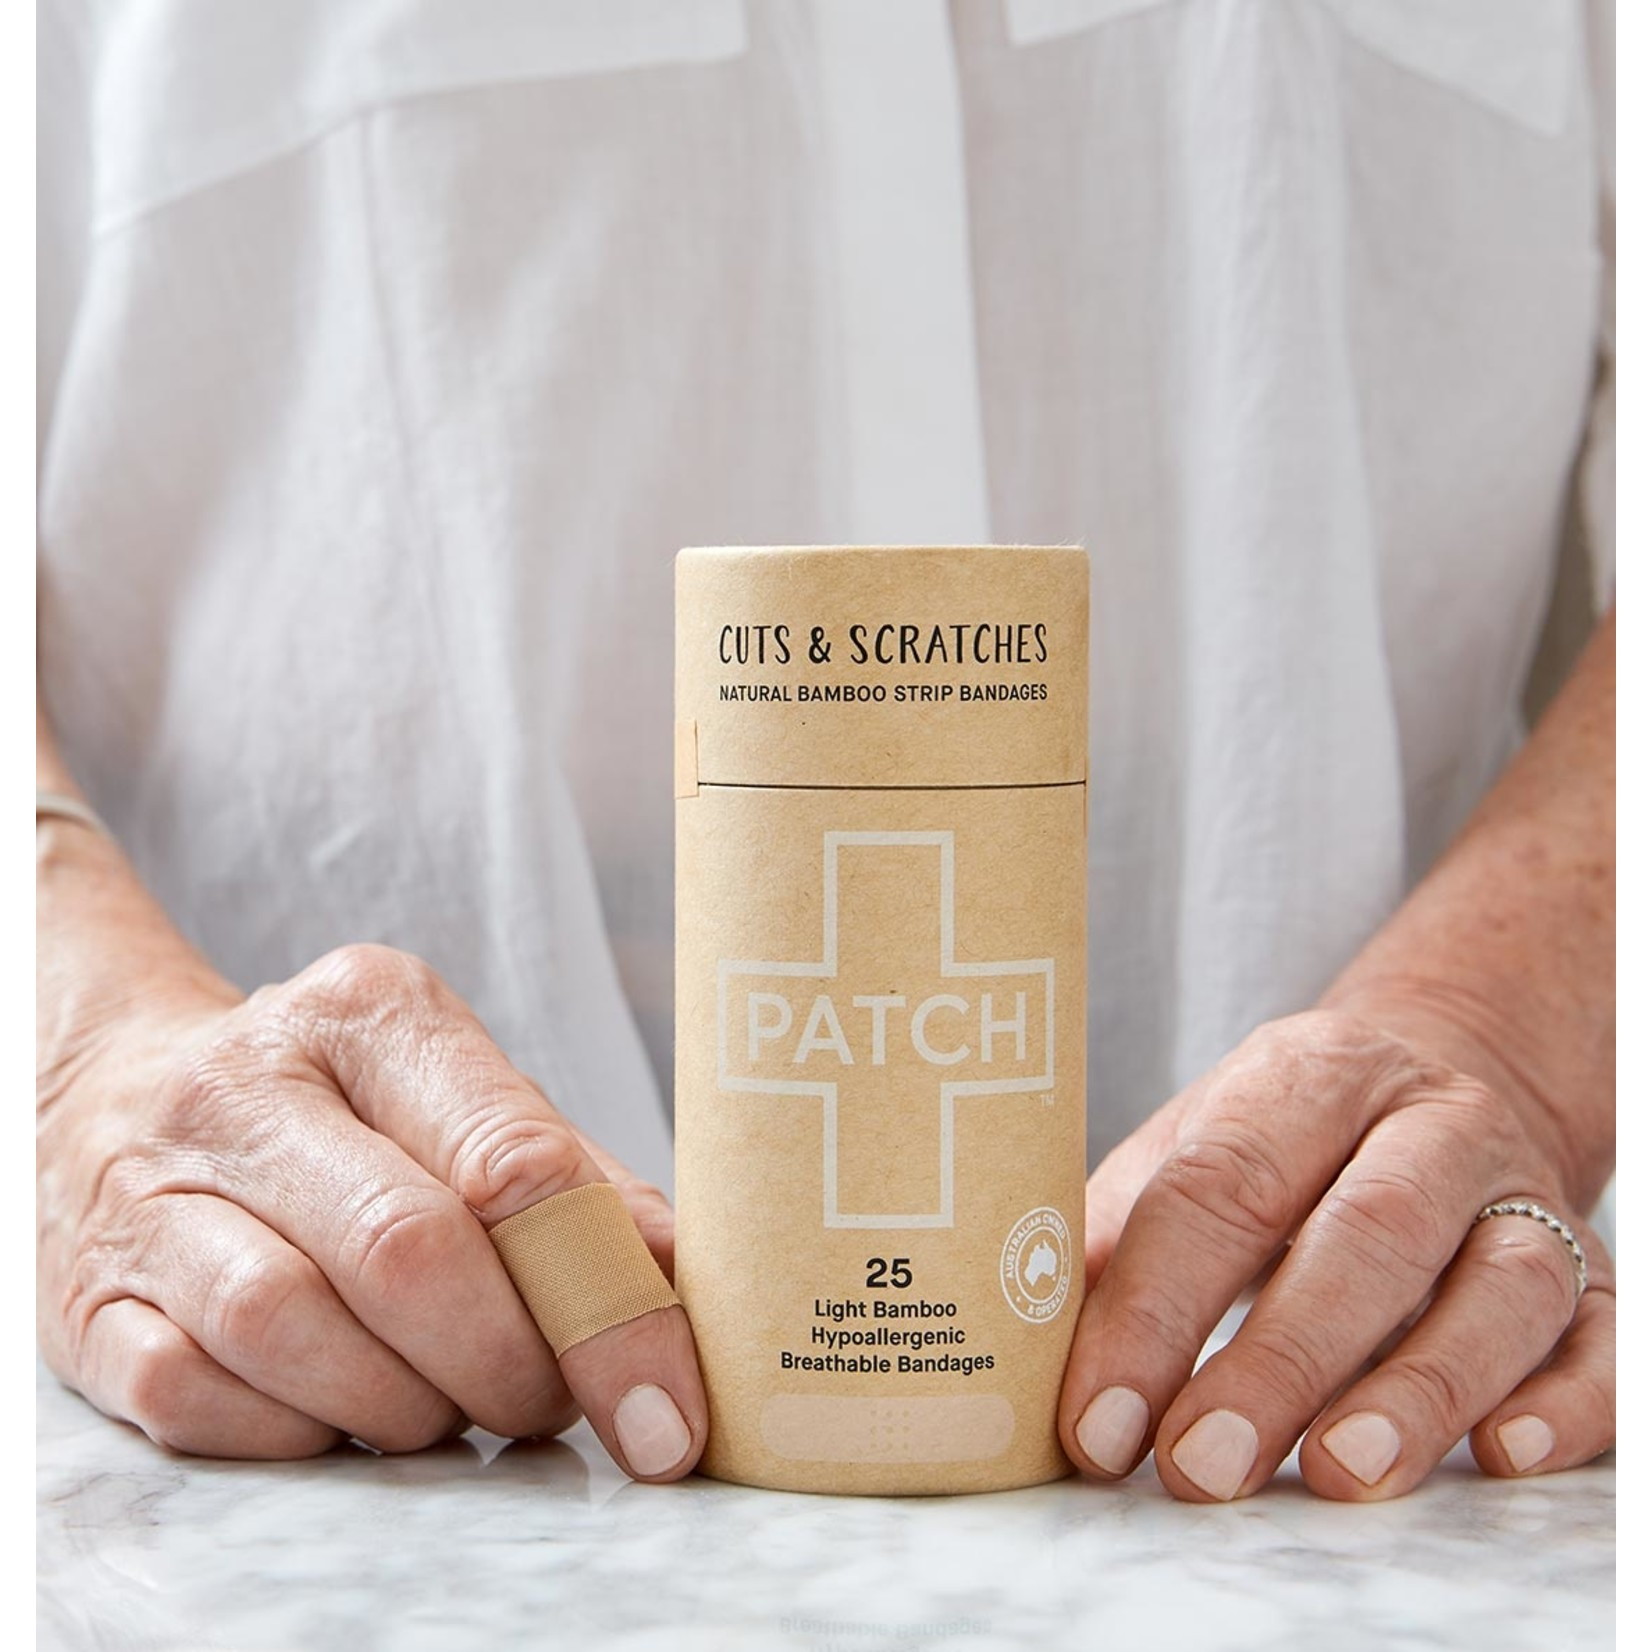 Patch Patch Cuts & Scratches Bamboo Bandages